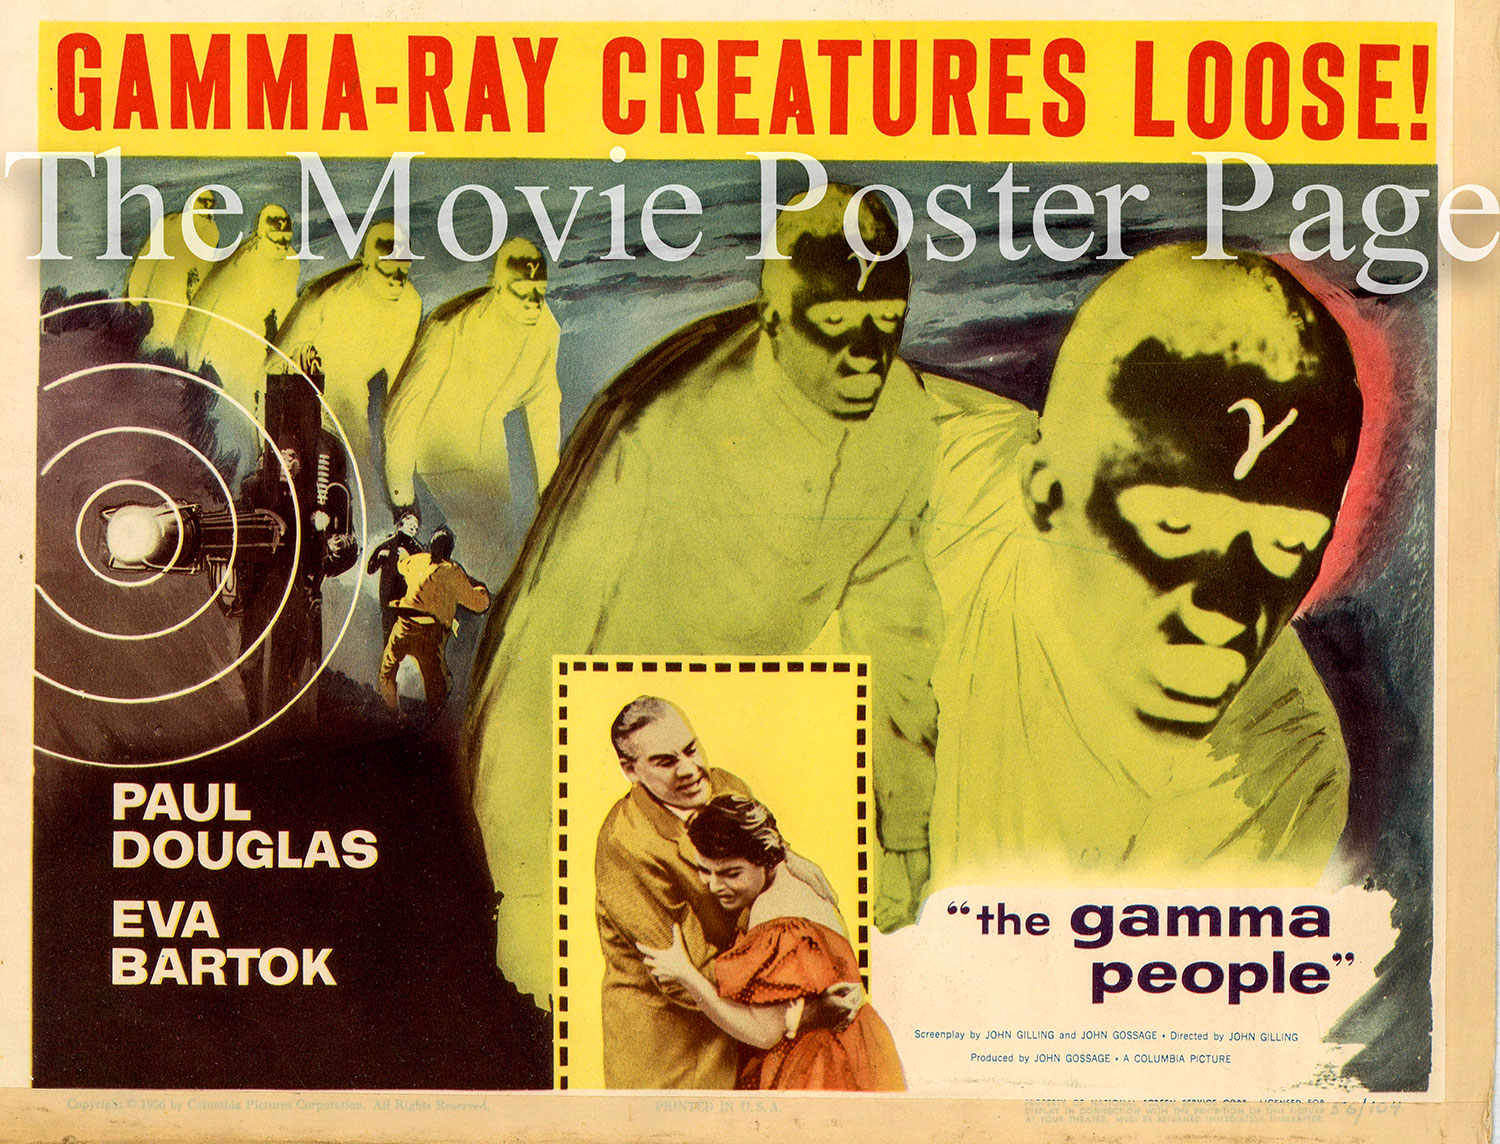 Pictured is a US title card promotional poster for the 1956 John Gilling film The Gamma People starring Paul Douglas.